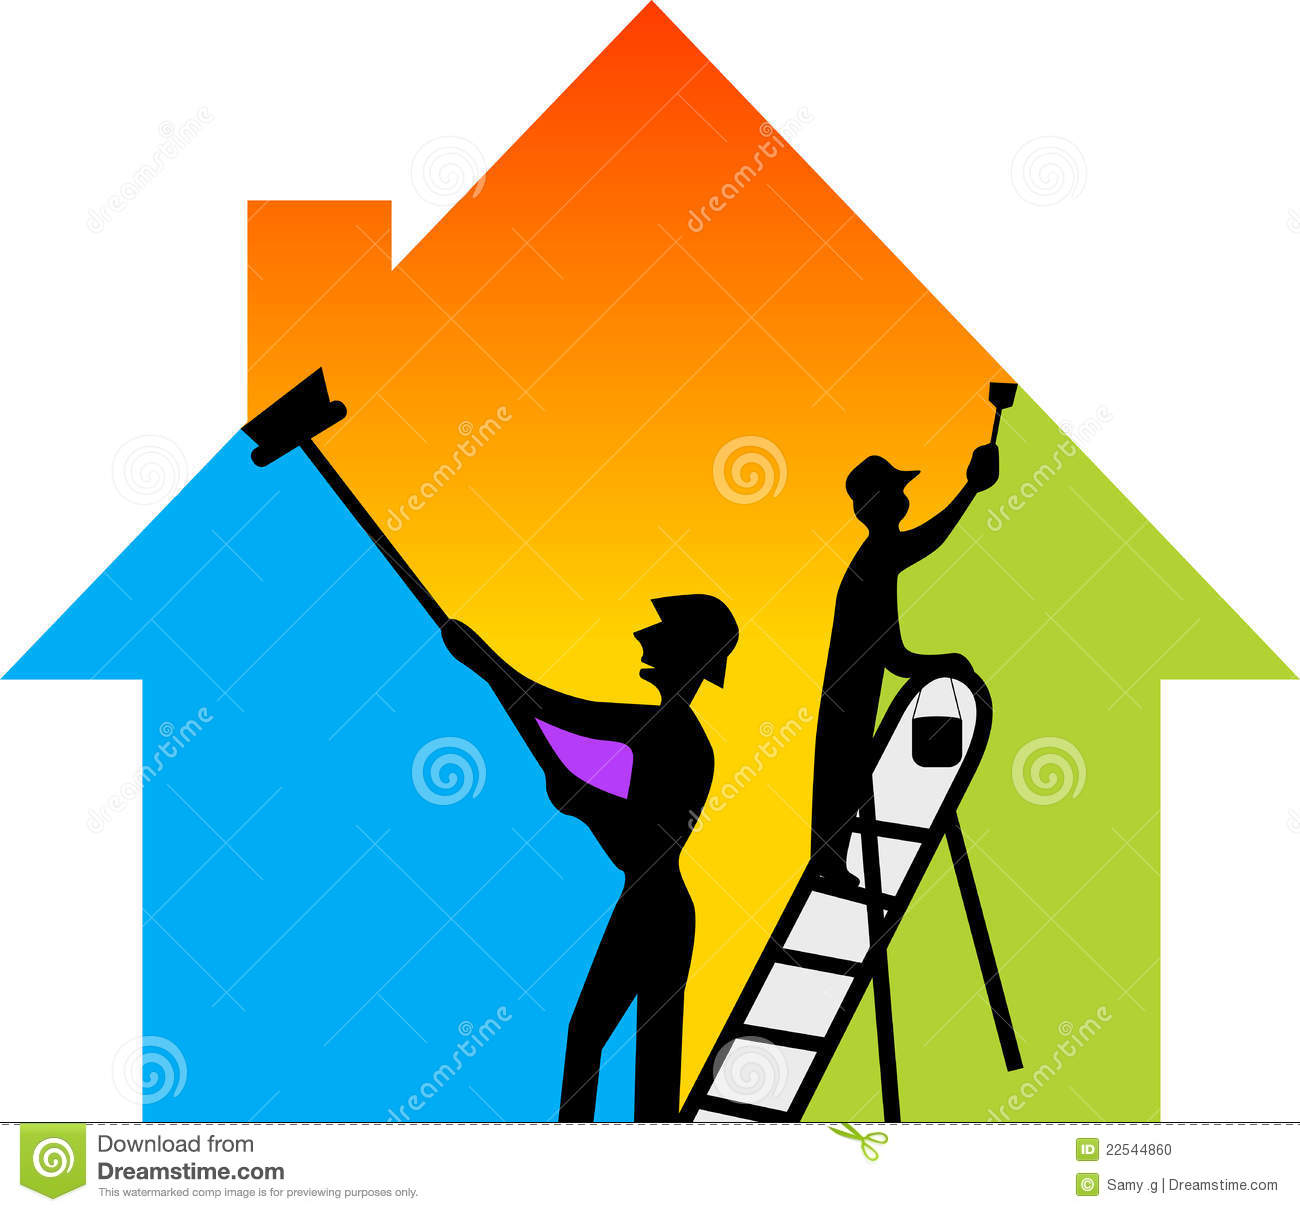 Construction Painting Cliparts on Construction General Contractor Logos